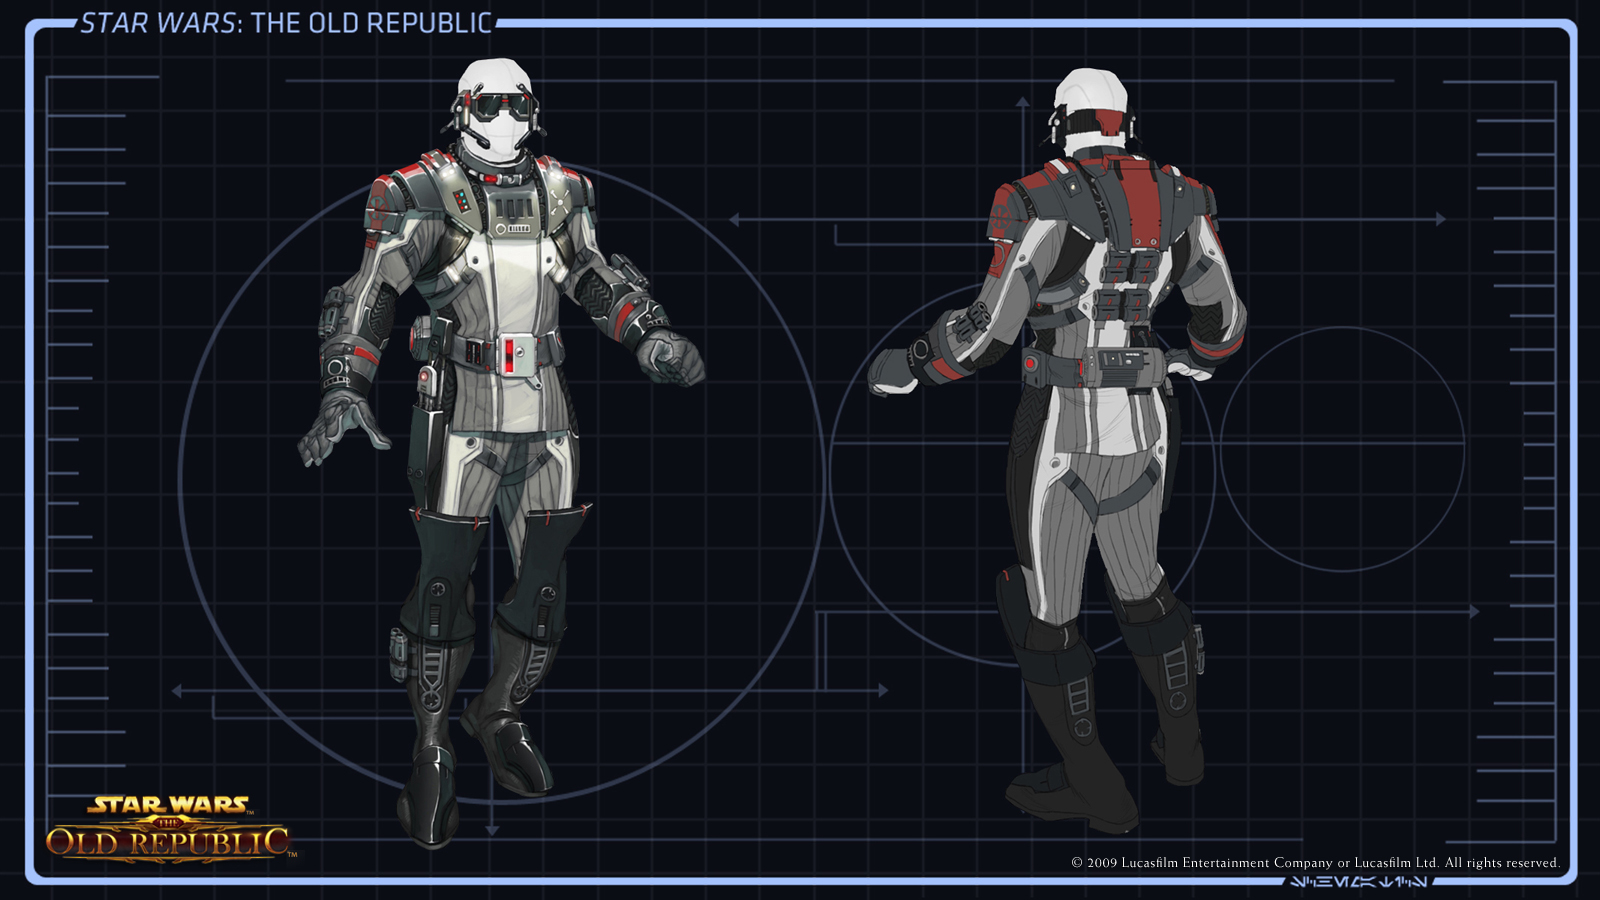 Swtor Life Star Wars The Old Republic Fansite